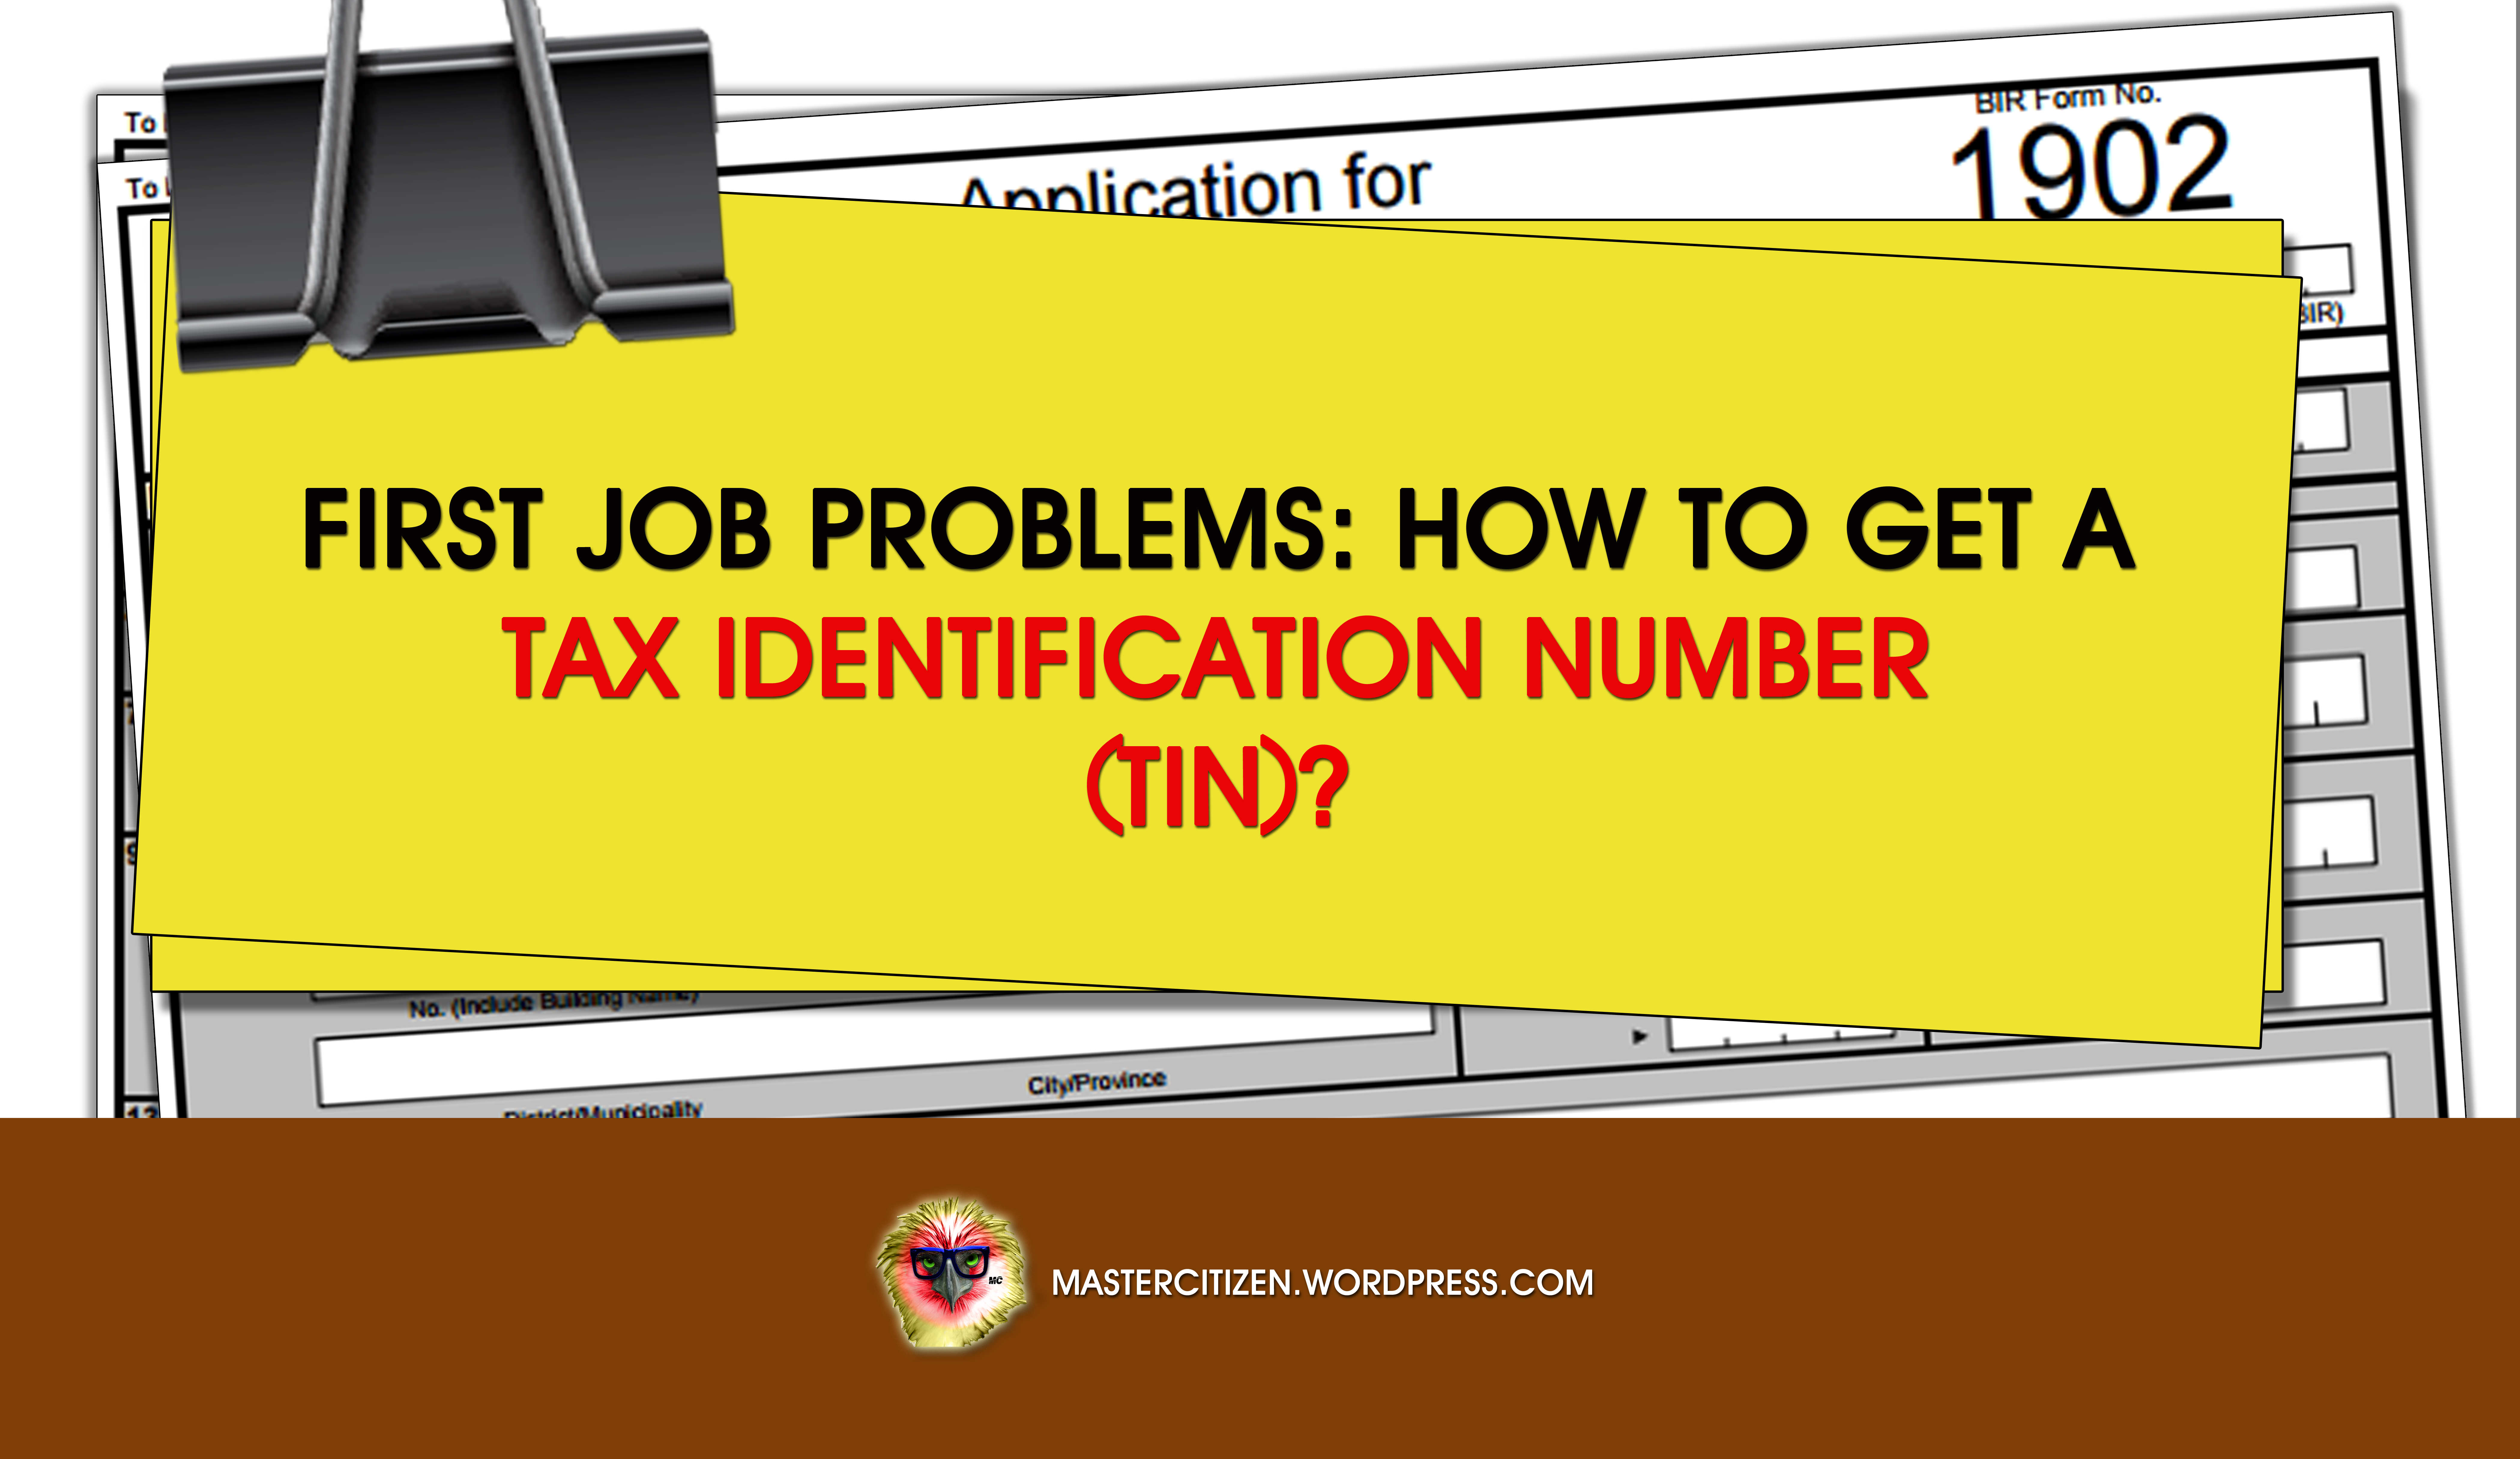 First Job Problems: How Do I Get a Tax Identification Number ... on bir form 1903, bir form 2316 certificate, bir form 1904, bir form wr, bir form 1906,